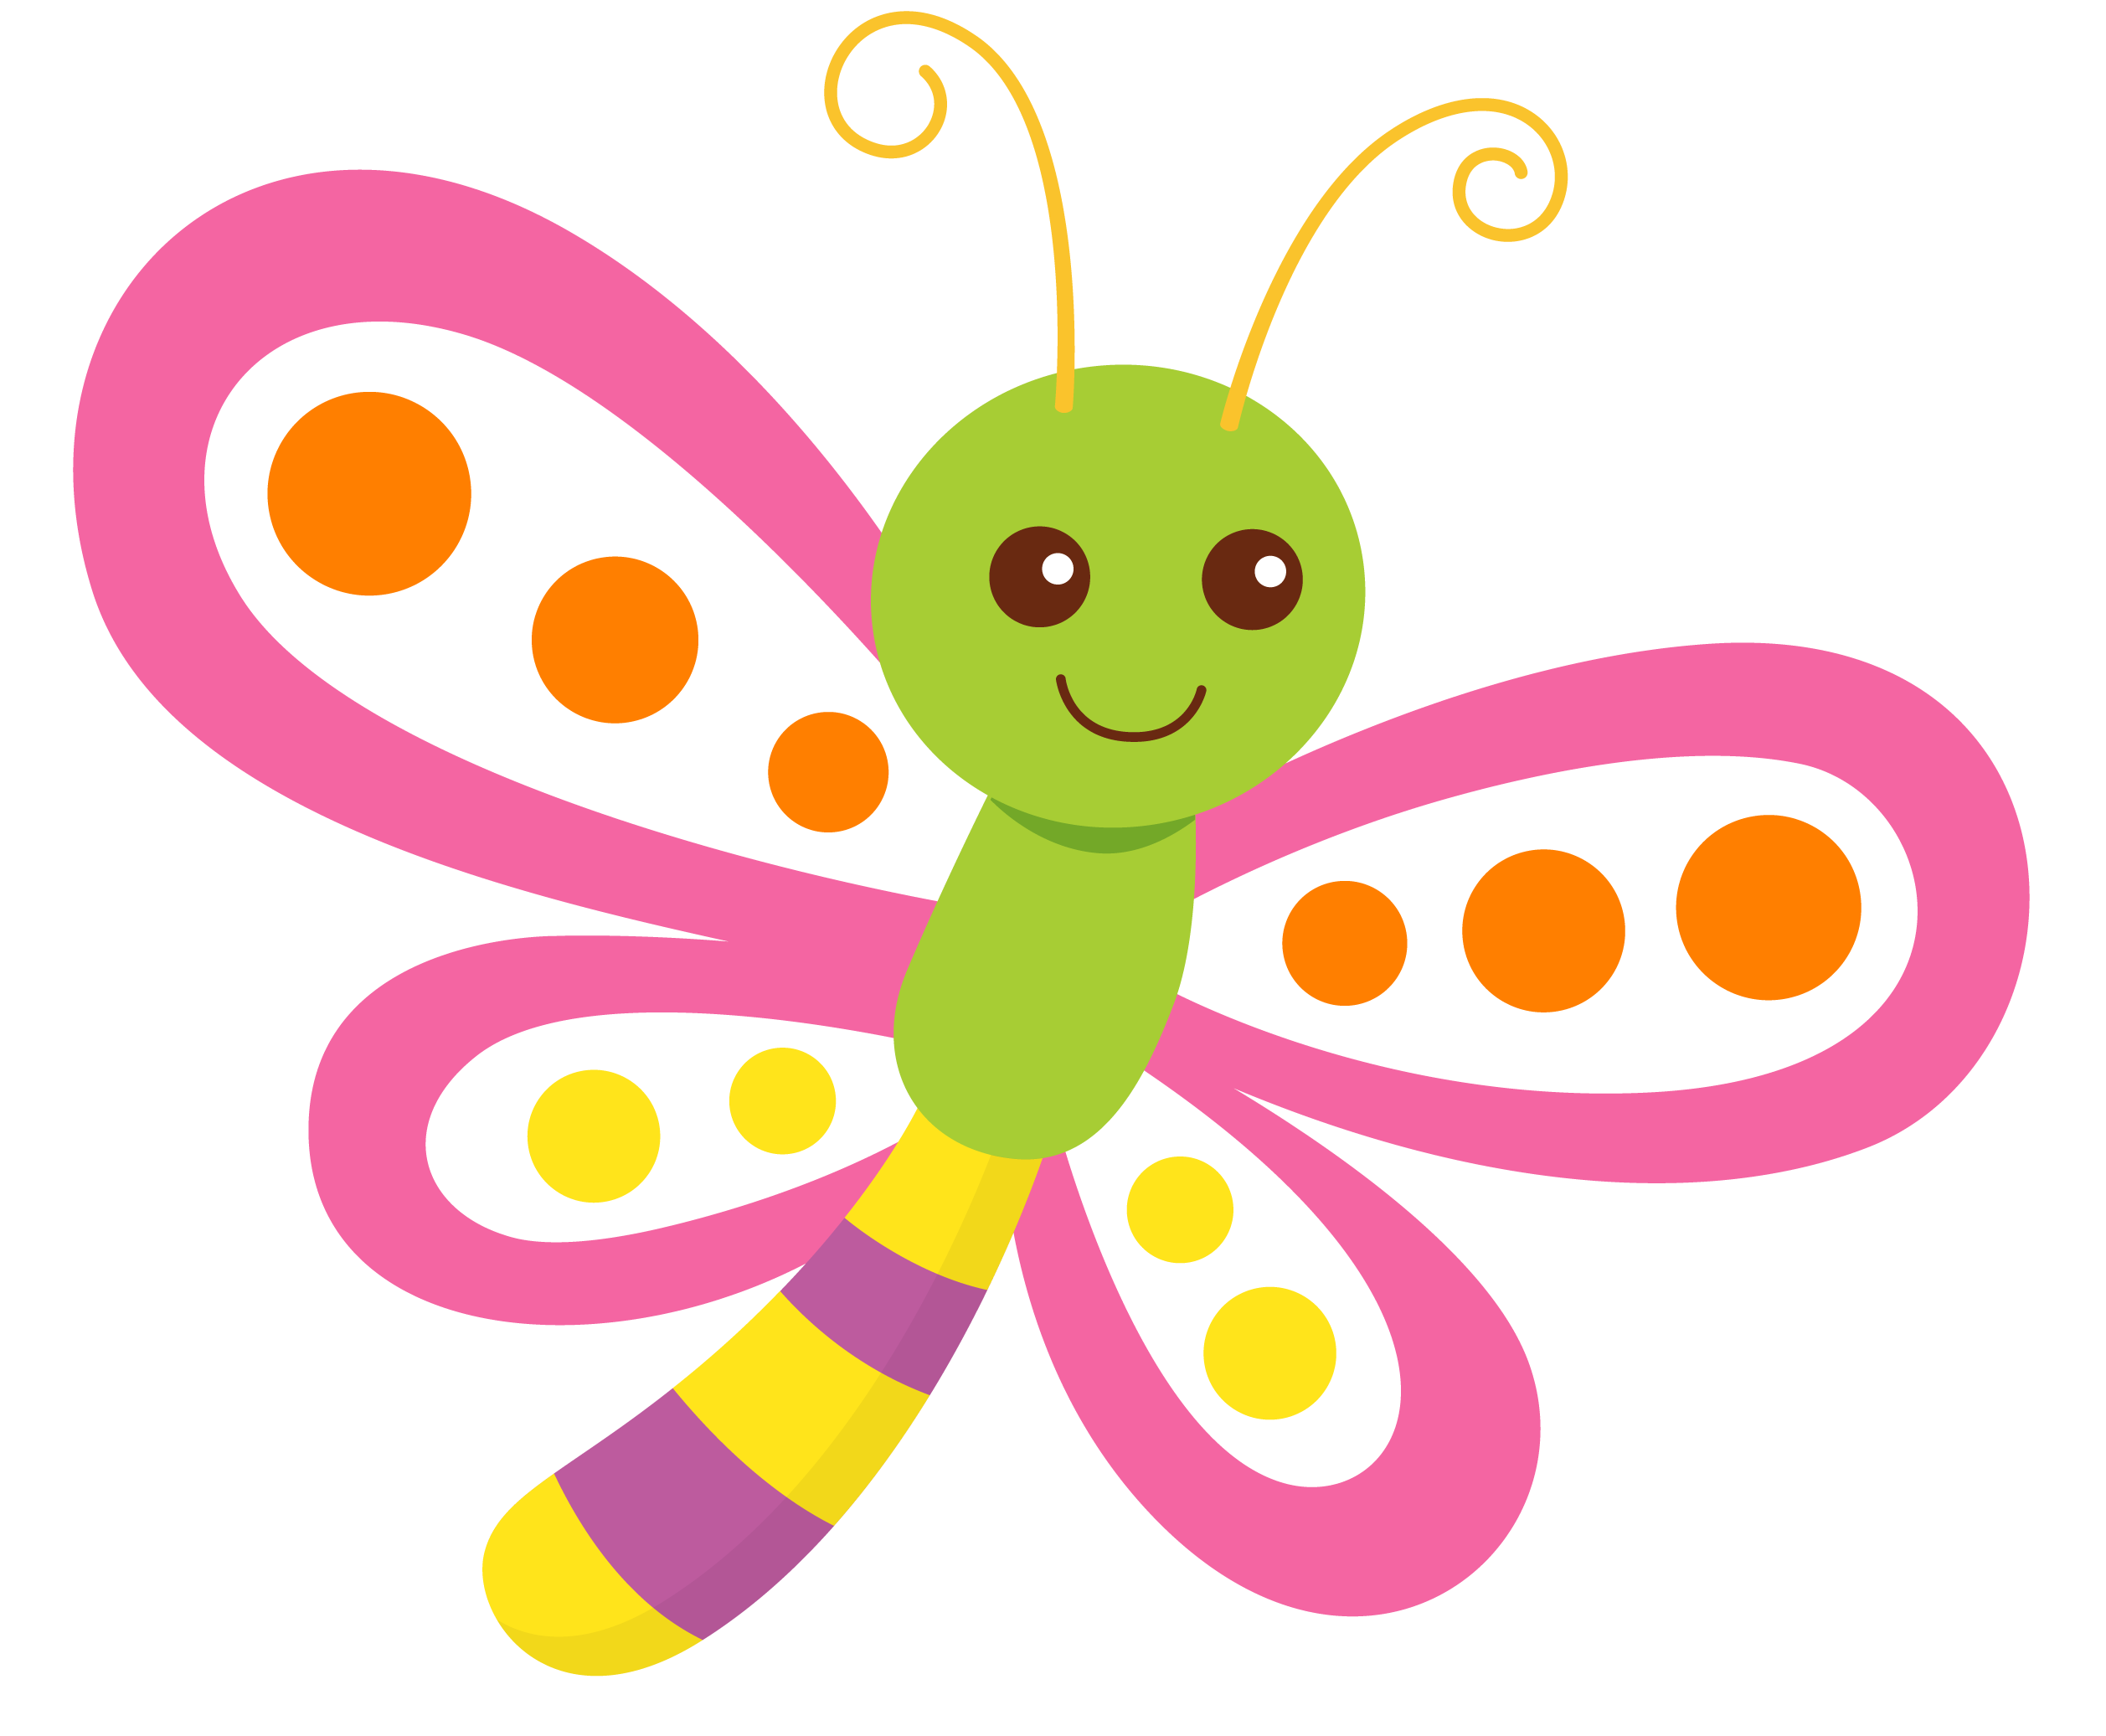 Insects clipart dragonfly. Photo by daniellemoraesfalcao minus